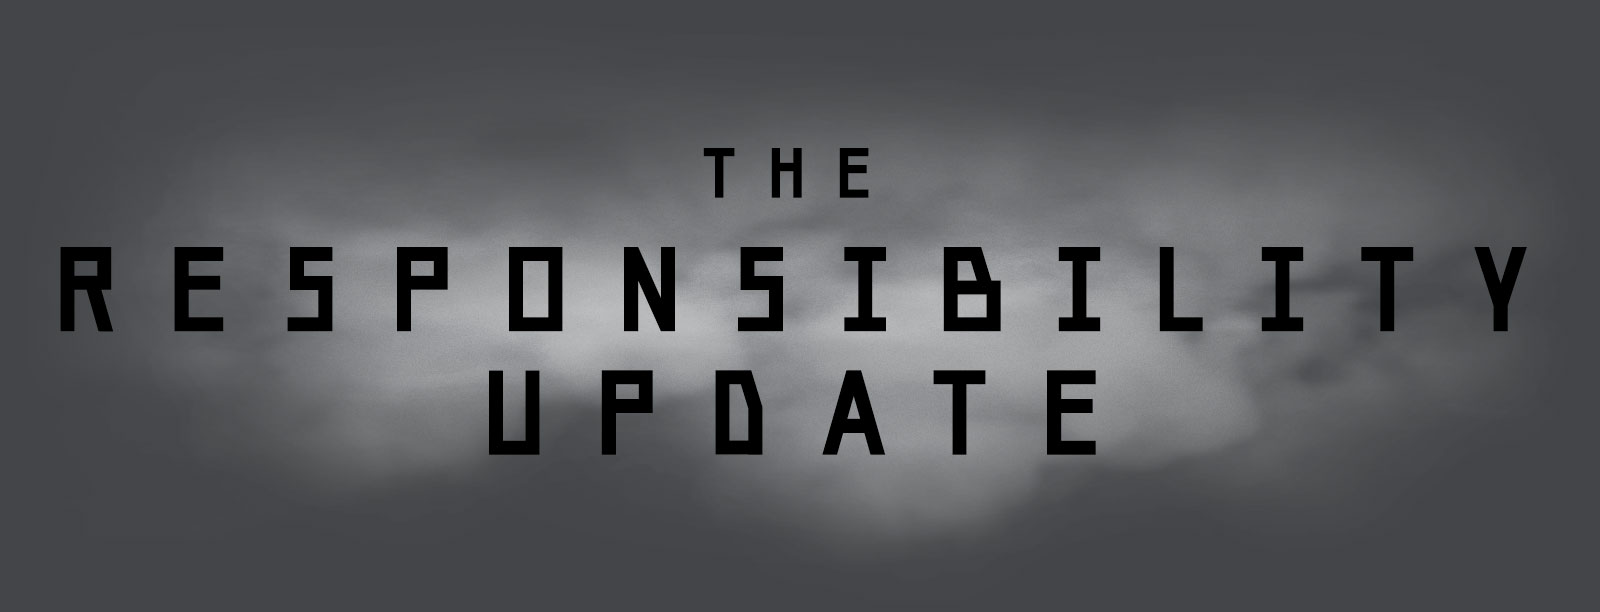 The Responsibility Update. An Accounting+ Story.